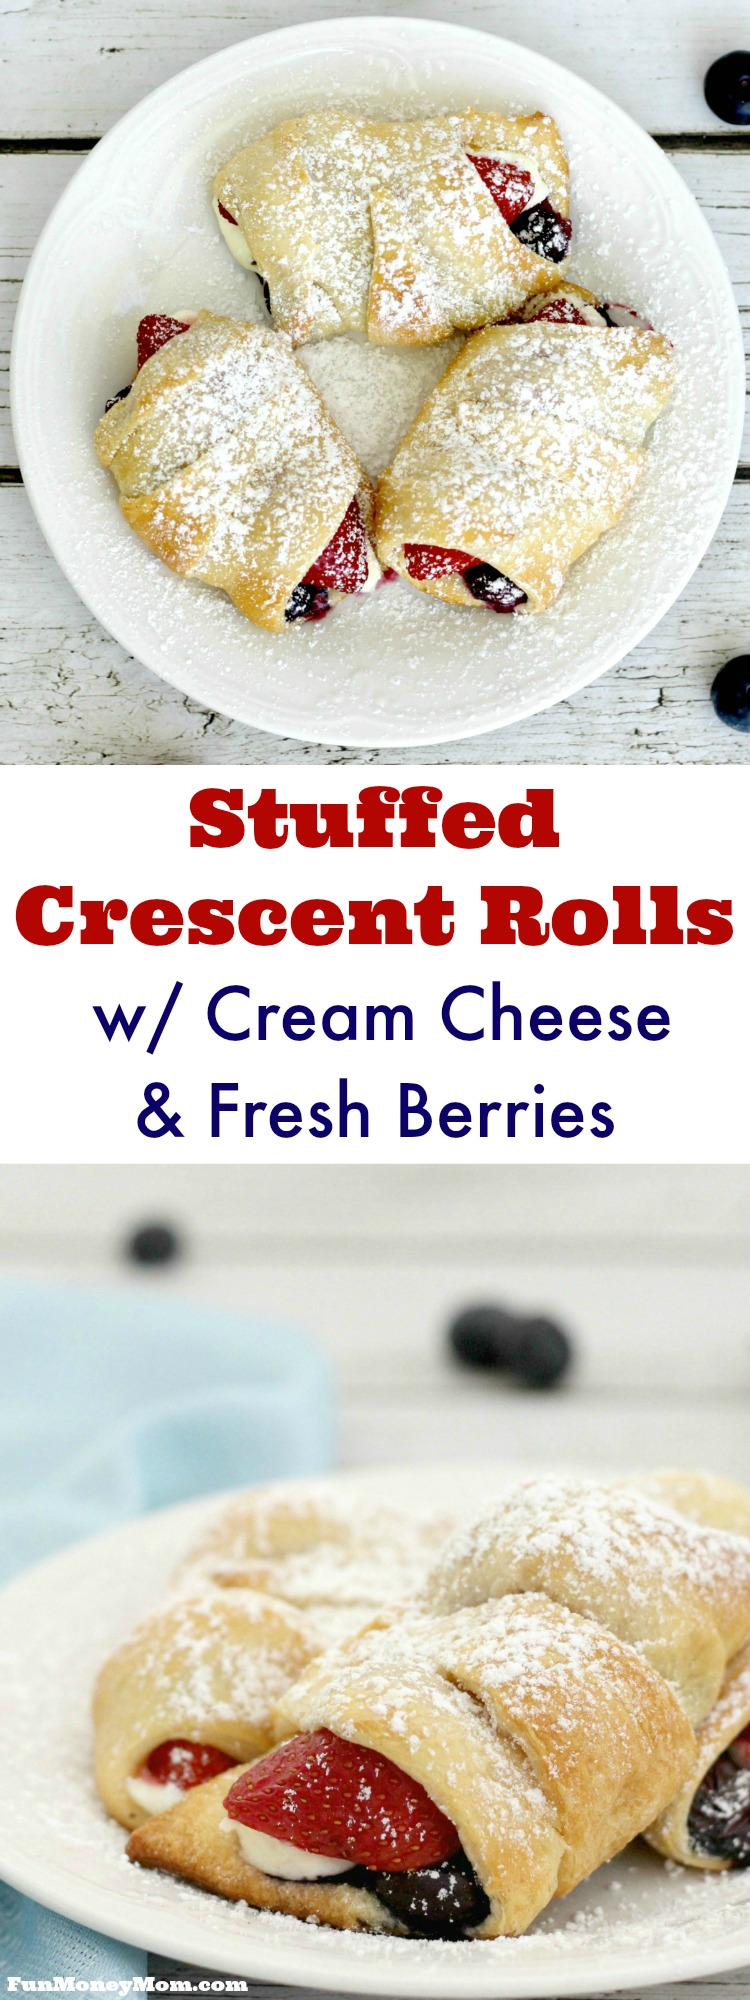 With just four main ingredients, these Cheese & Berry Stuffed Crescent Rolls are just as easy as they are delicious. Serve them for breakfast or dessert!